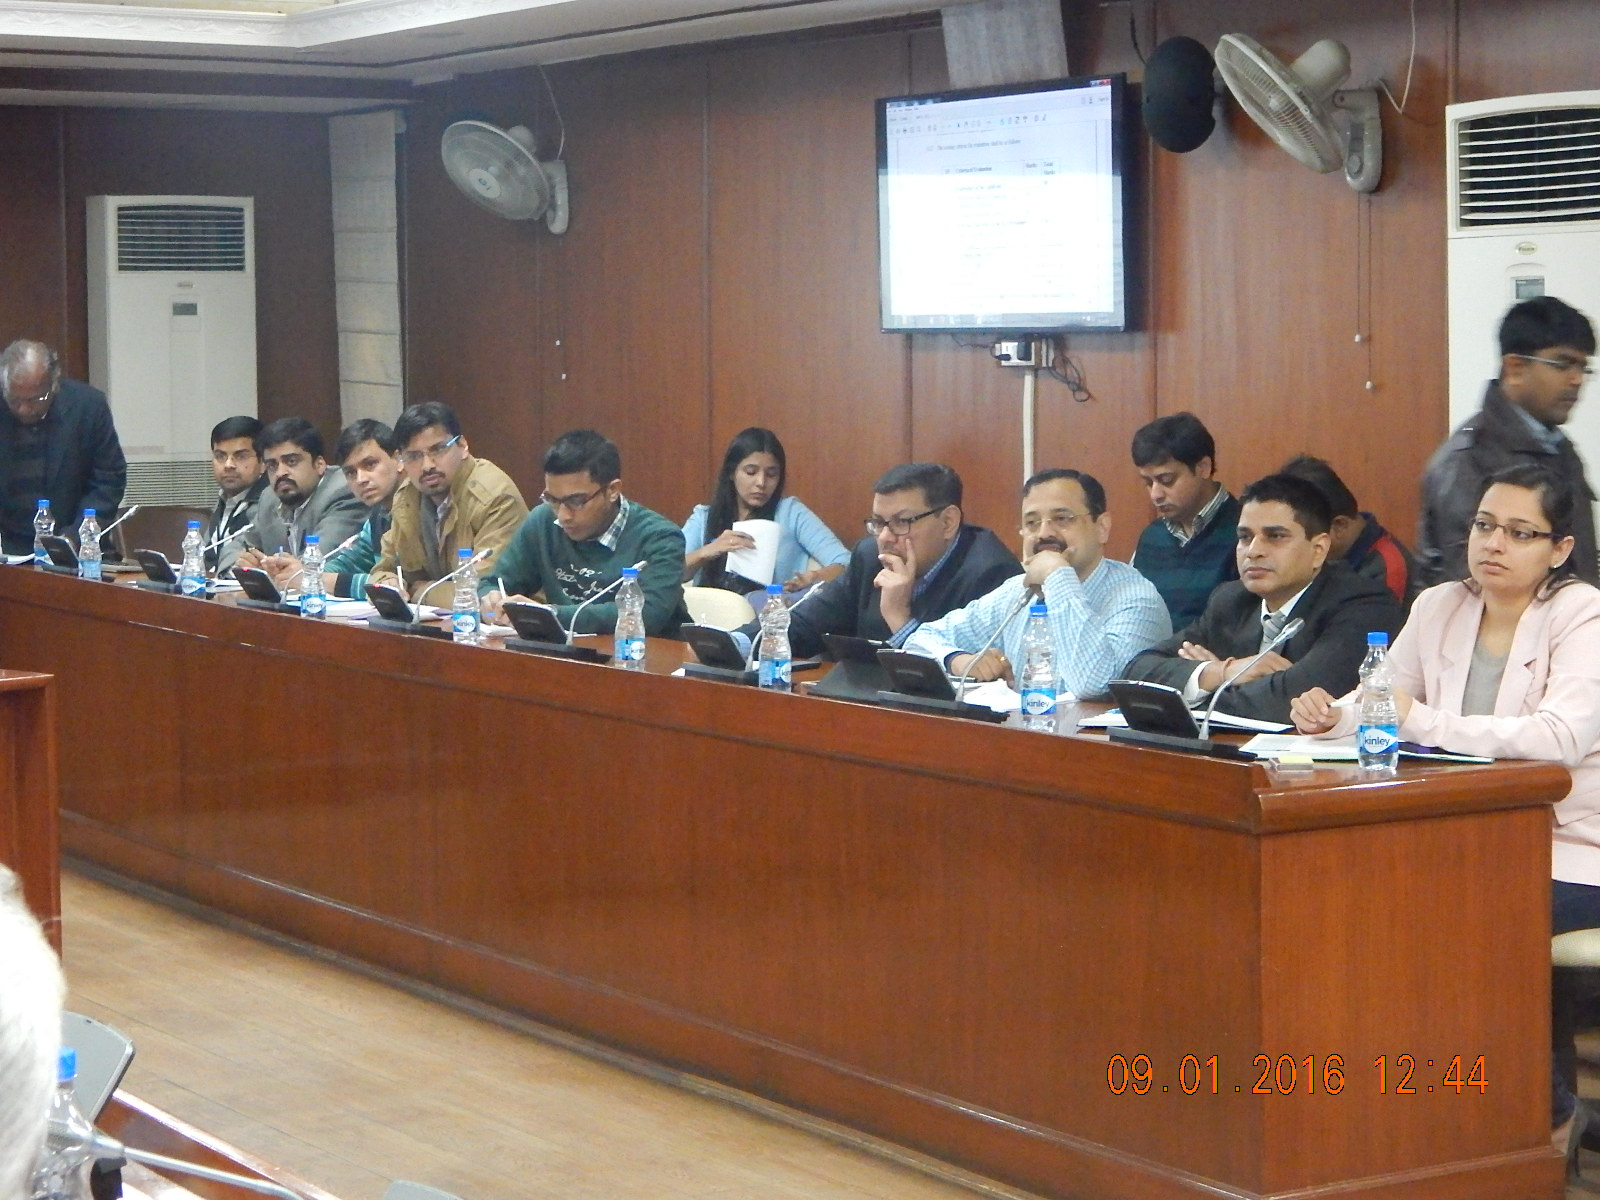 Pre-Qualification Conference held on 9th Jan 2016, at MoWR, RD & GR Conference Room